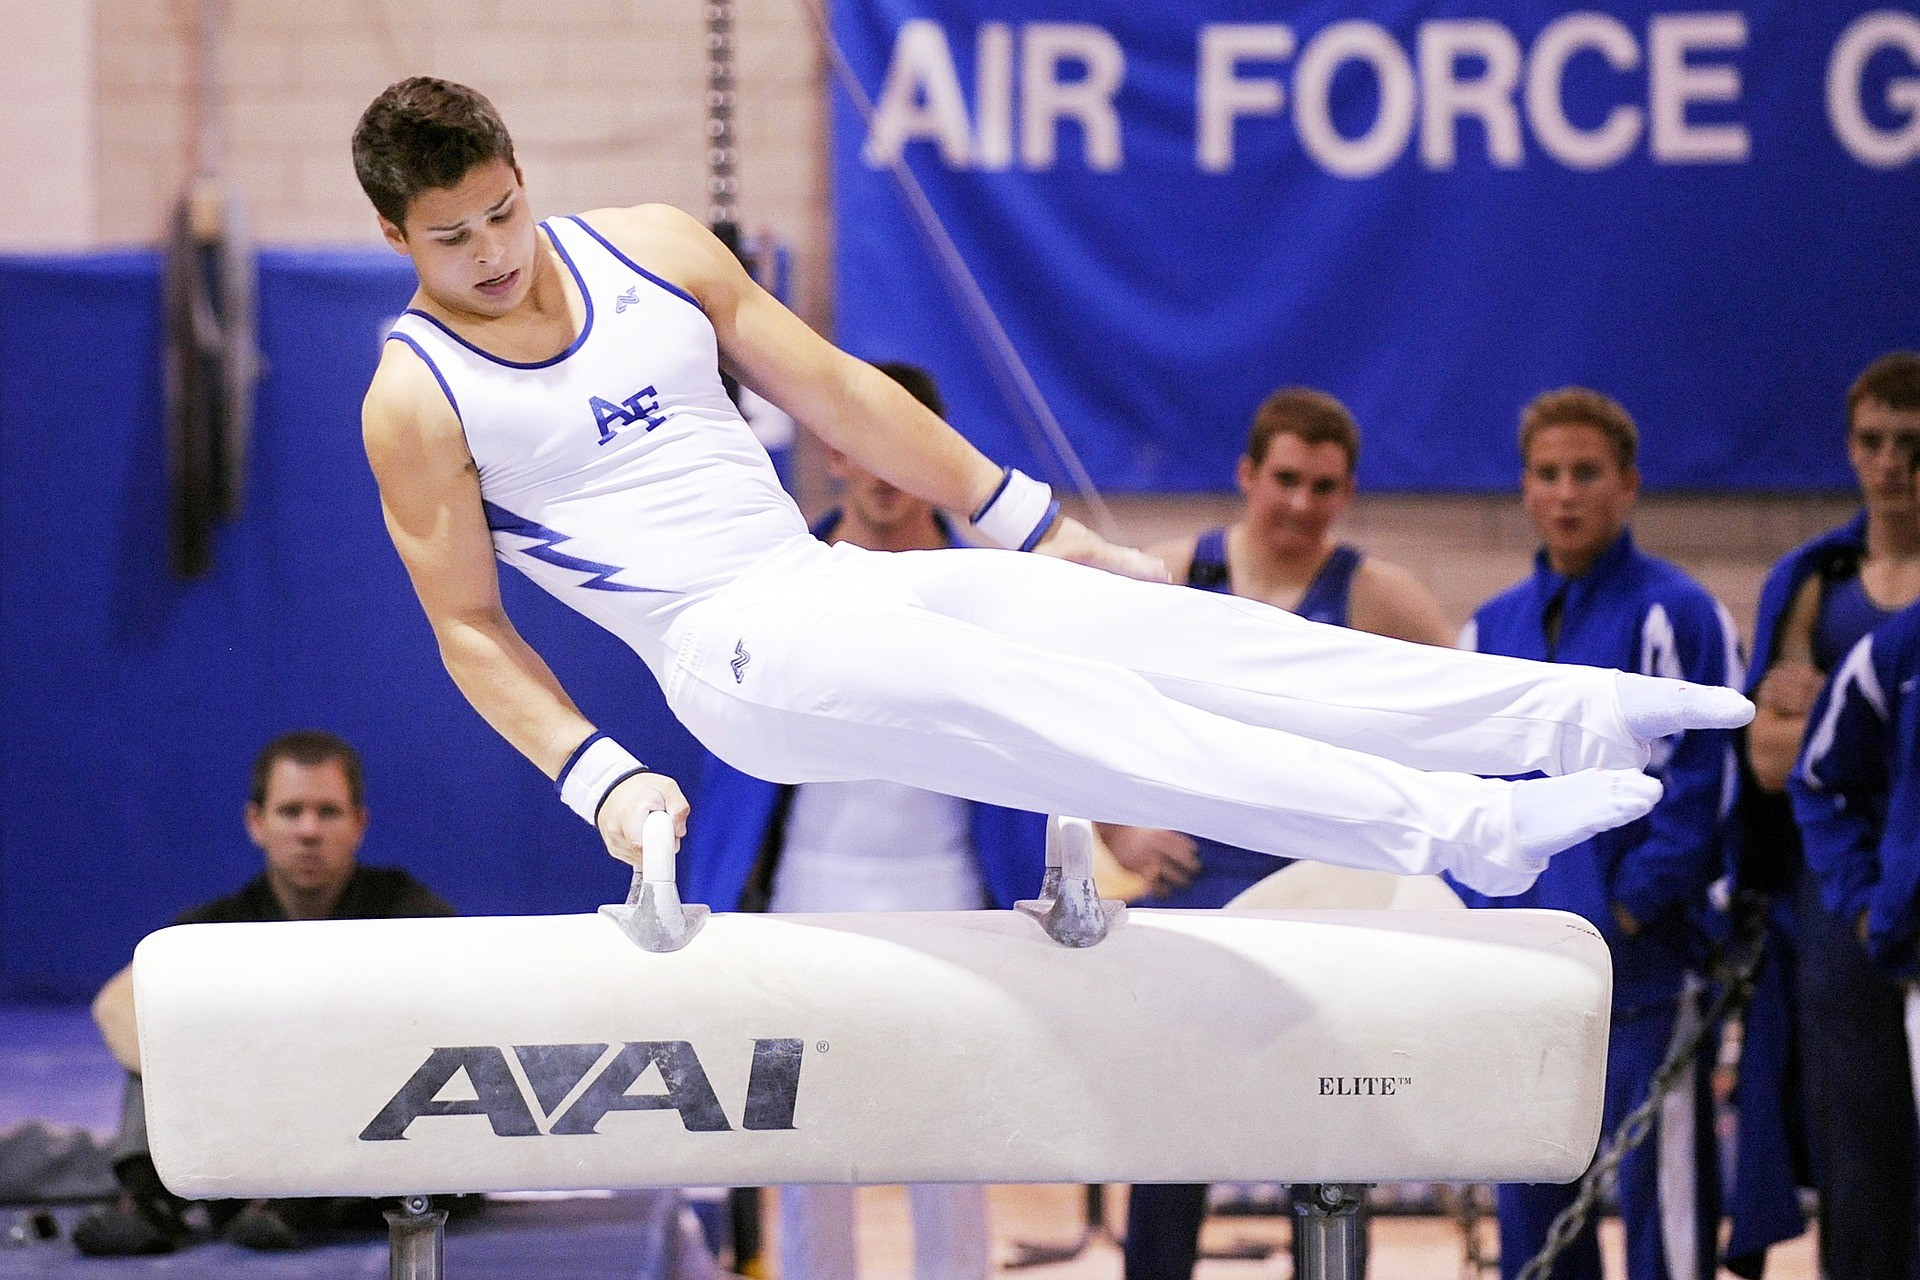 Gymnastics Man on Pommel Horse Folsom